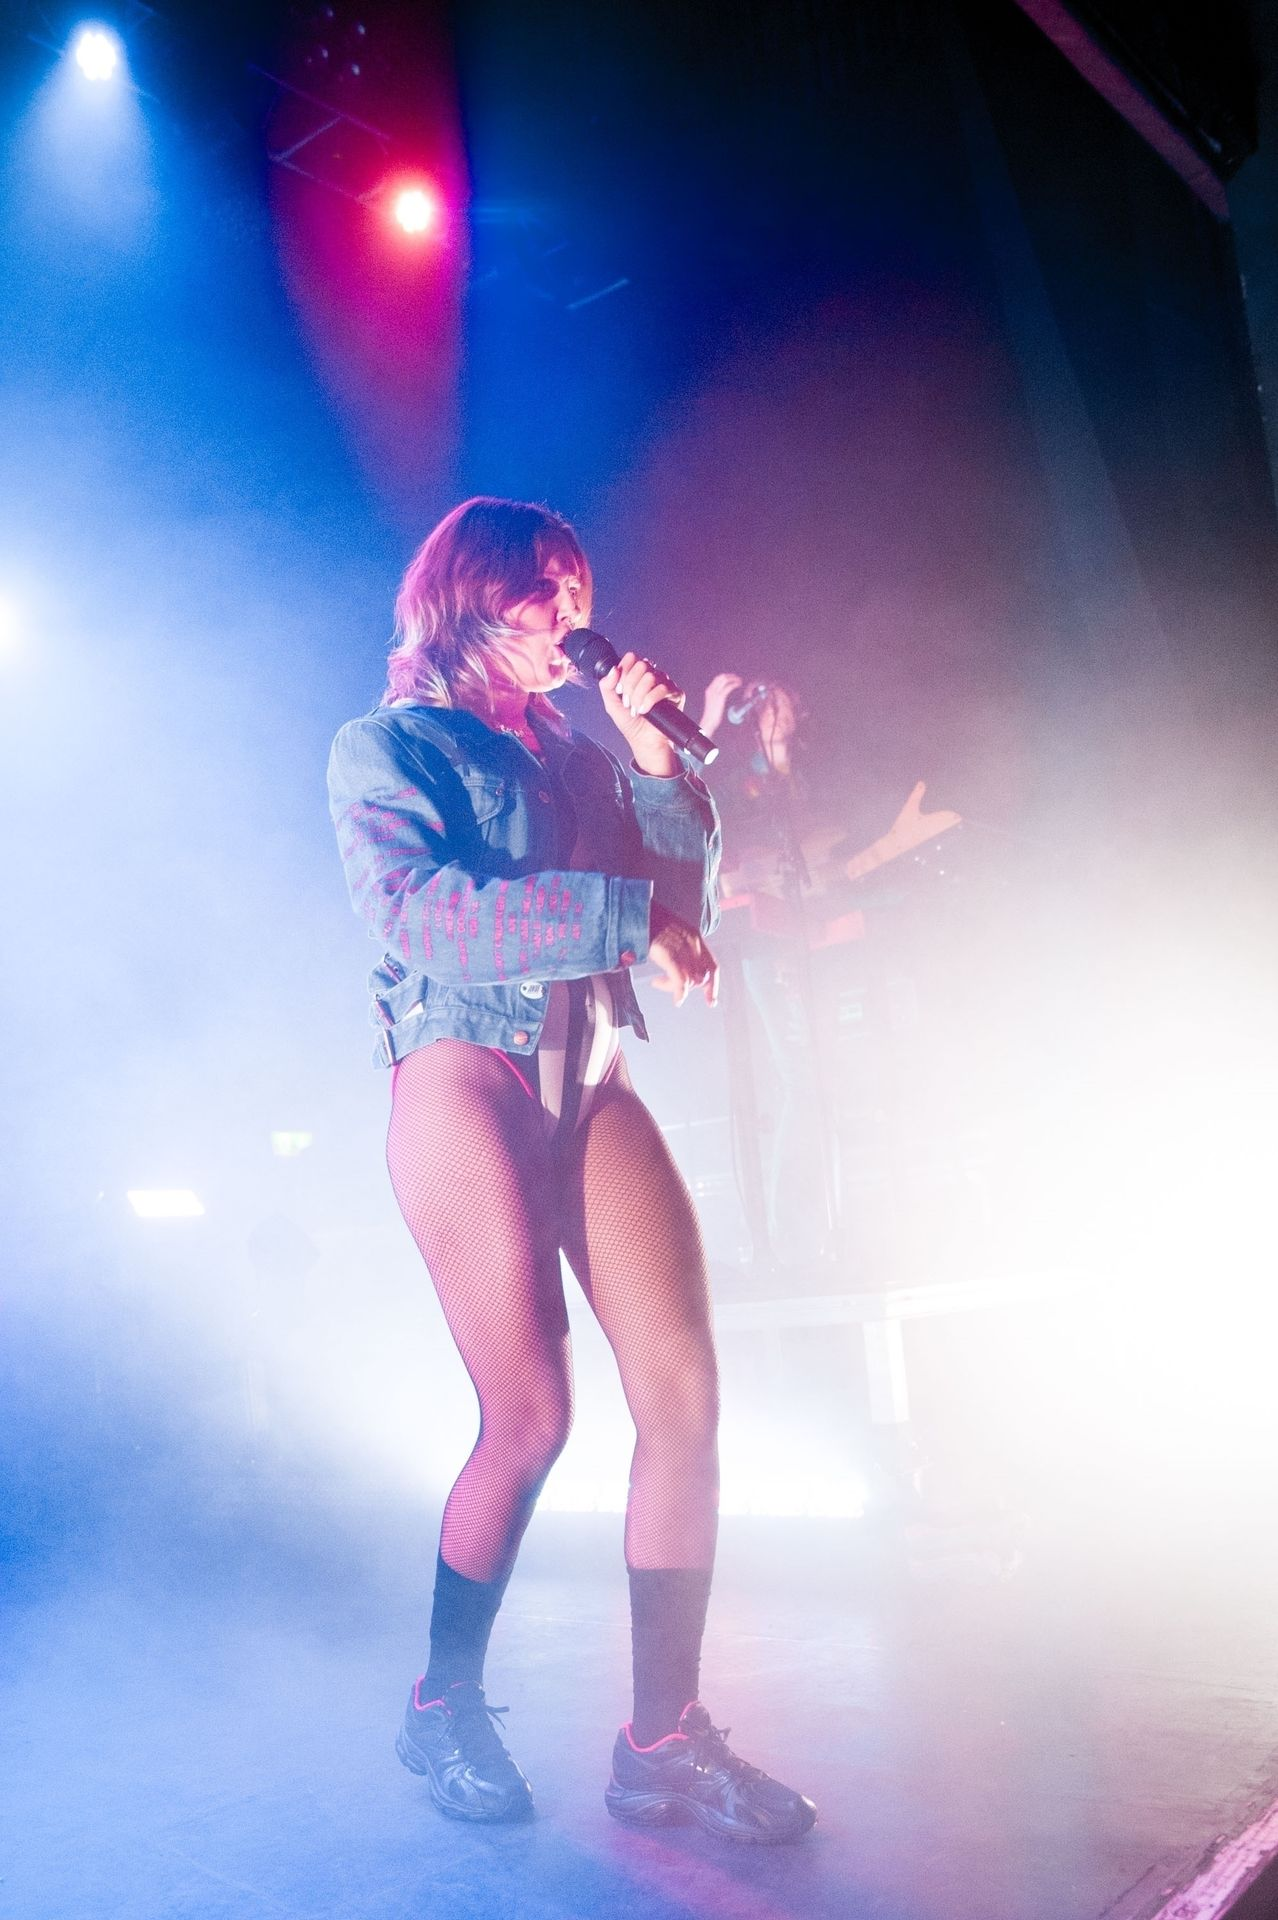 Tove Lo Is In Concert Performing Live At O2 Forum Kentish Town In London 0028